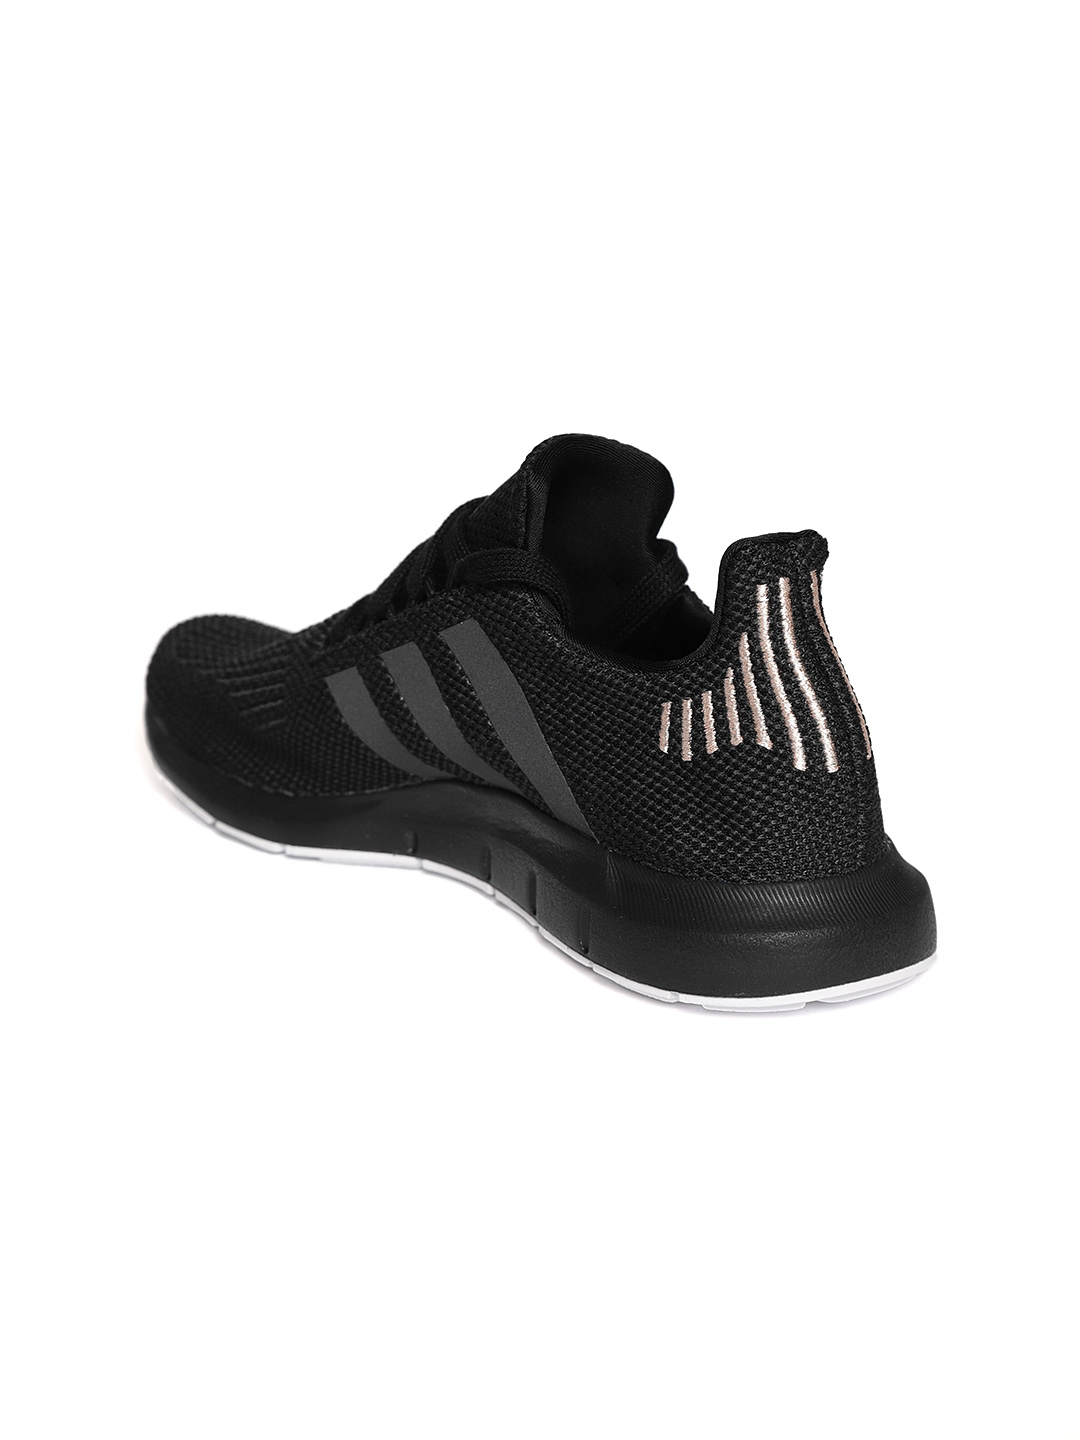 b4e78368aceac Buy ADIDAS Originals Women Black Swift Run Casual Shoes - Casual ...